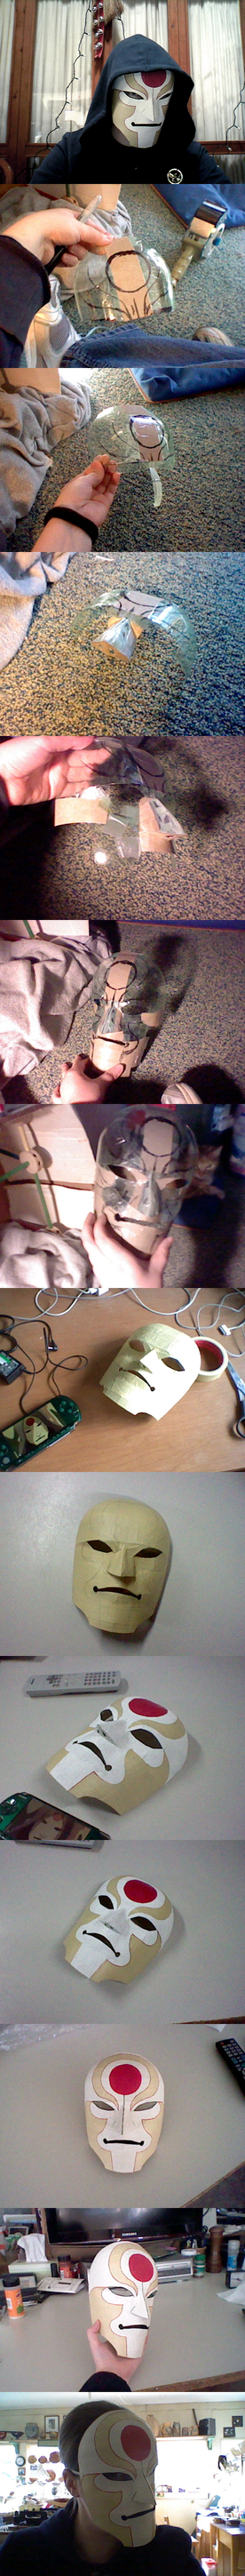 Amon Mask (Made from a soda bottle and pasta box) by eldi13